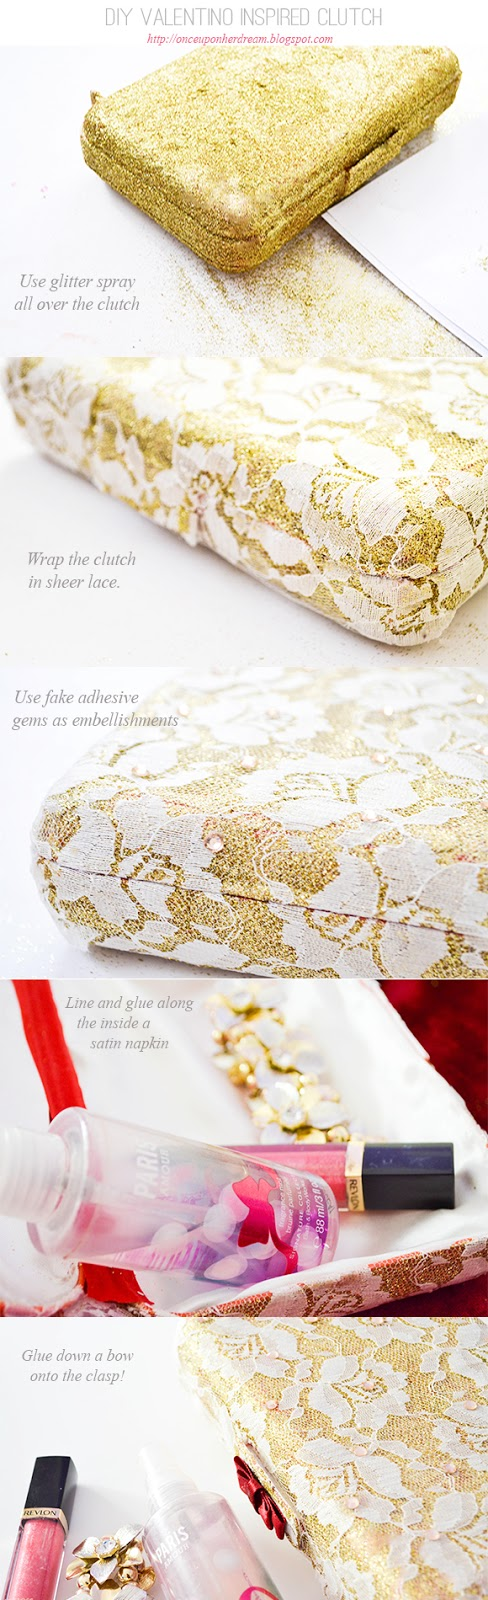 How to make DIY Valentino inspired lace clutch 3